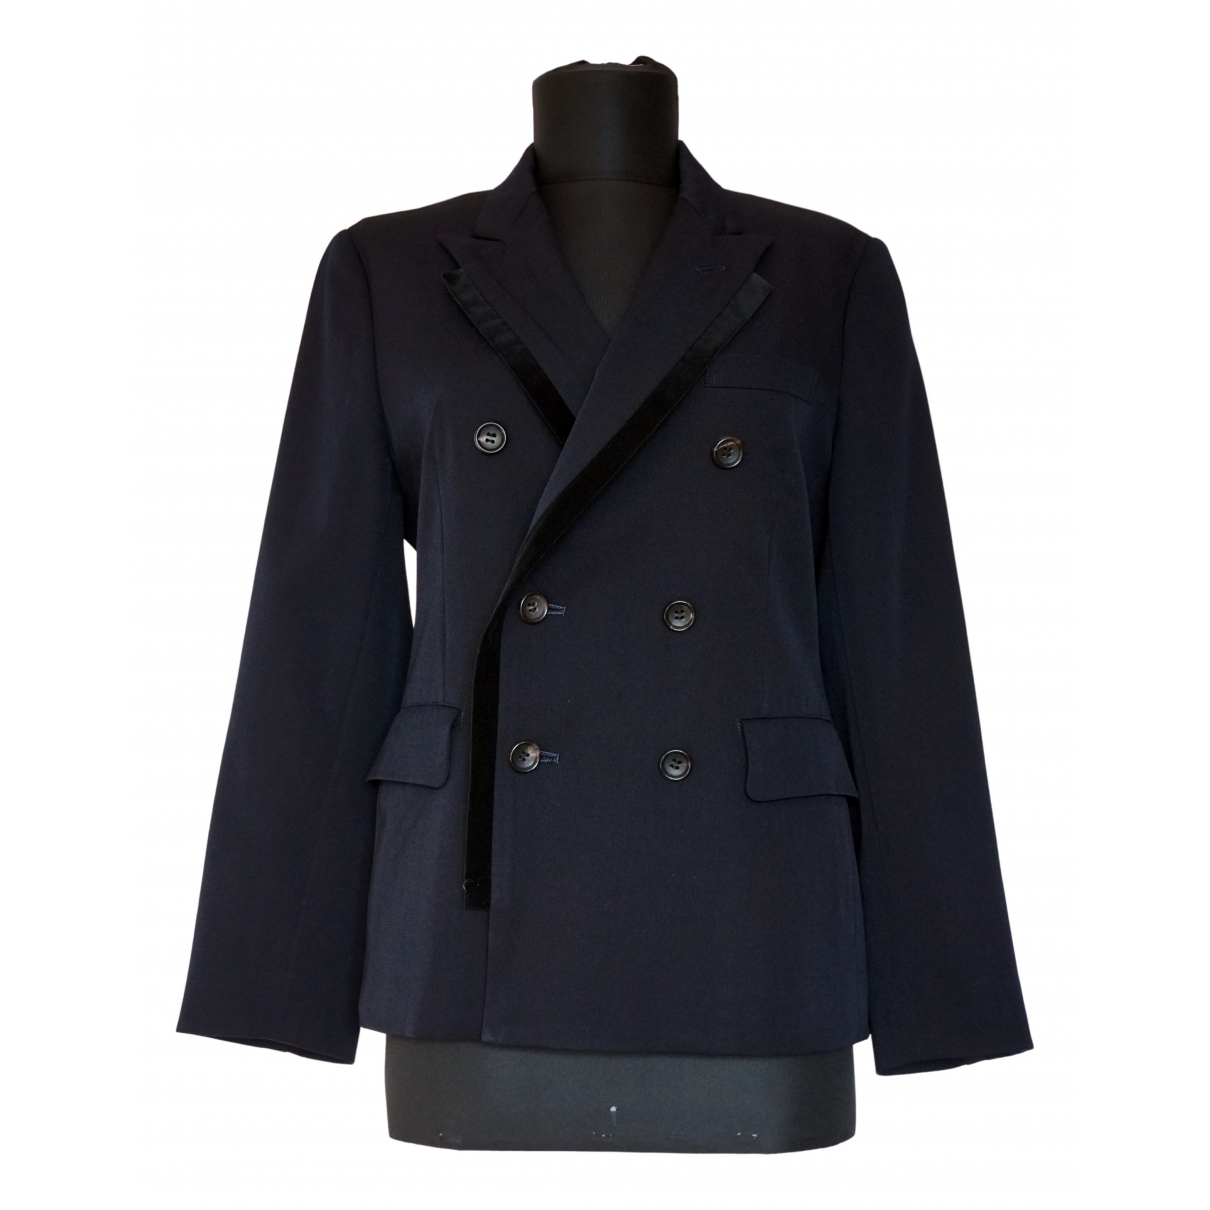 Comme Des Garcons \N Navy Wool jacket for Women S International